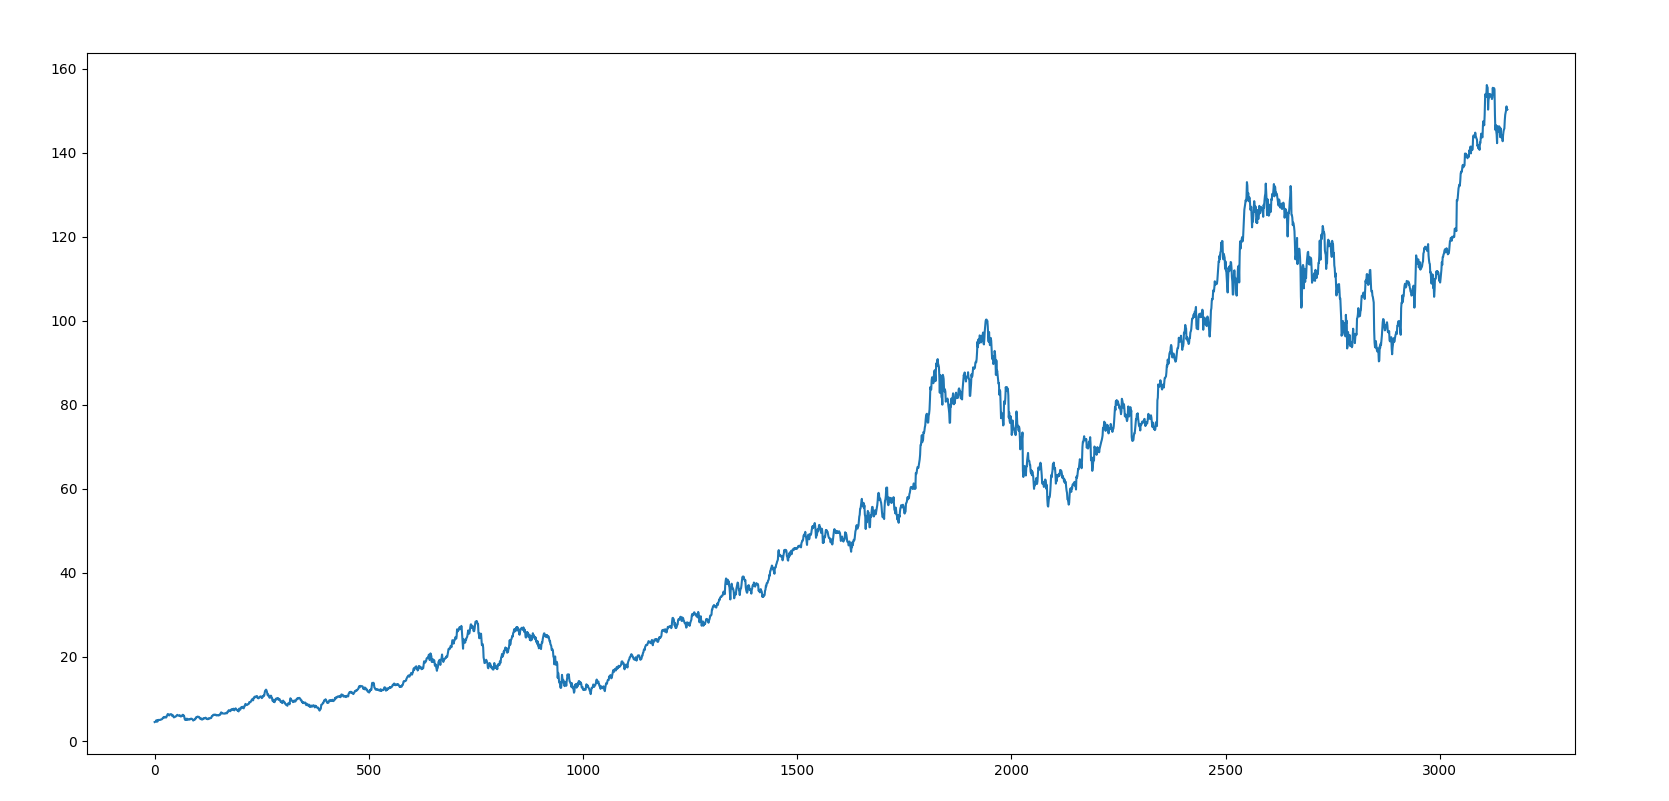 Download Historical Stock Data With R And Python Chris Conlan